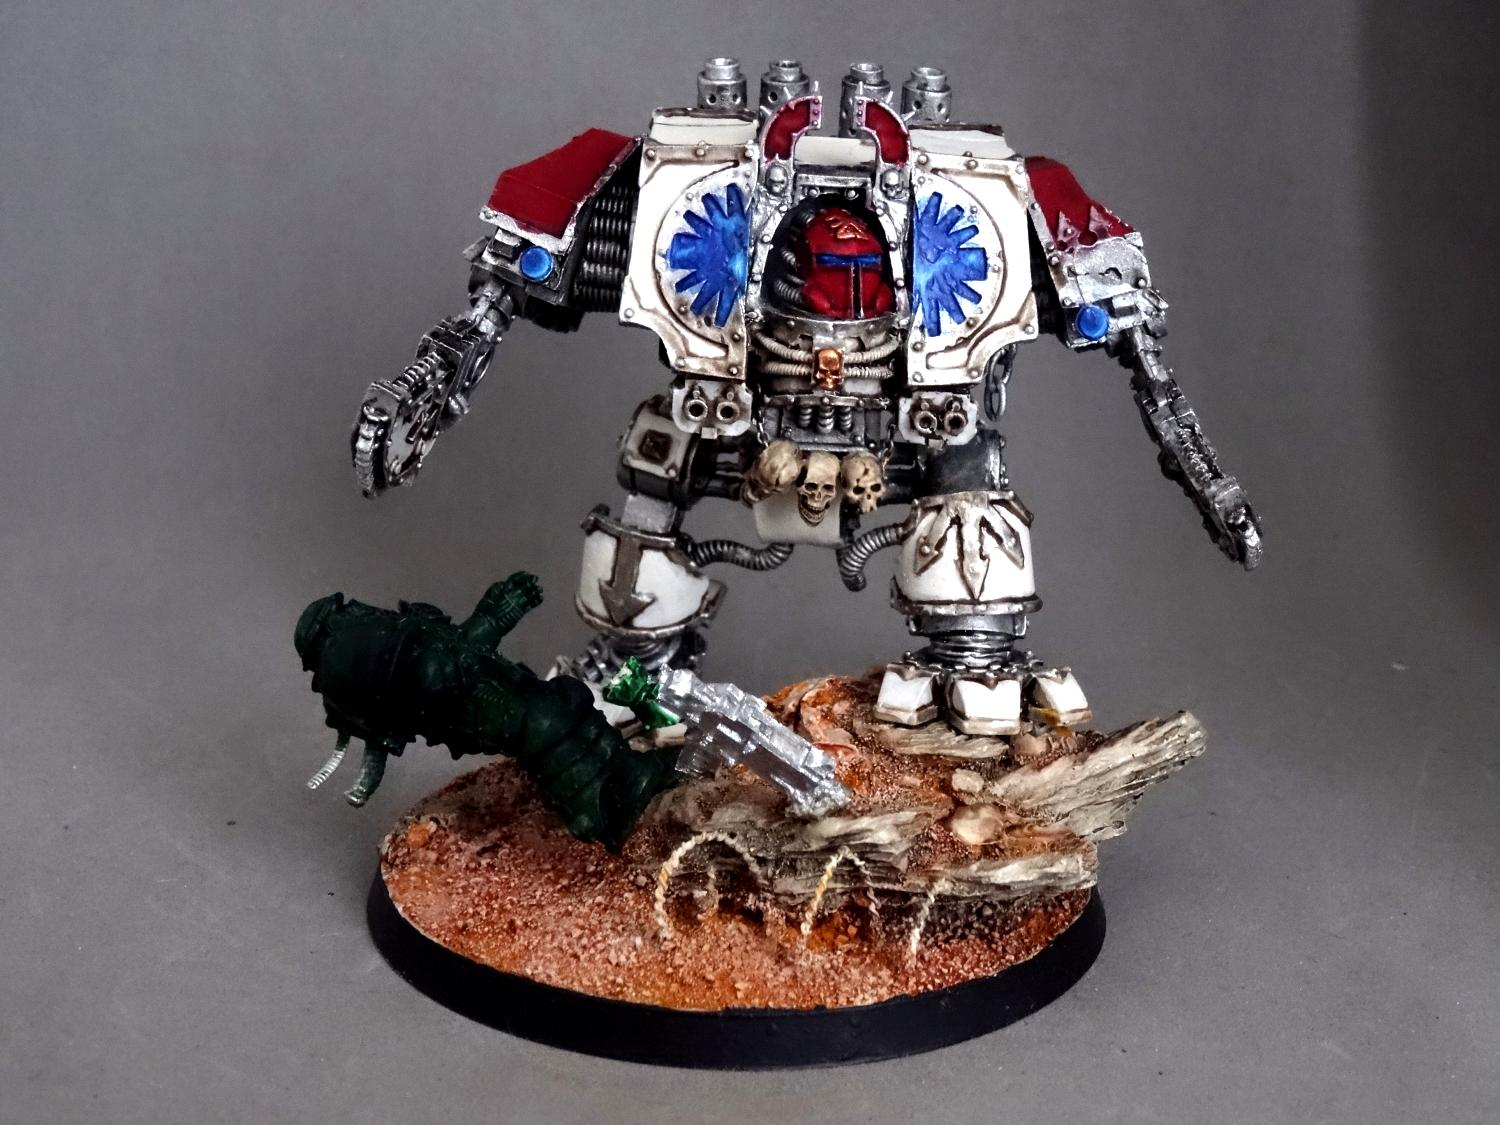 Chaos, Conversion, Dreadnought, Forge World, Khorne, Space Marines, World Eaters